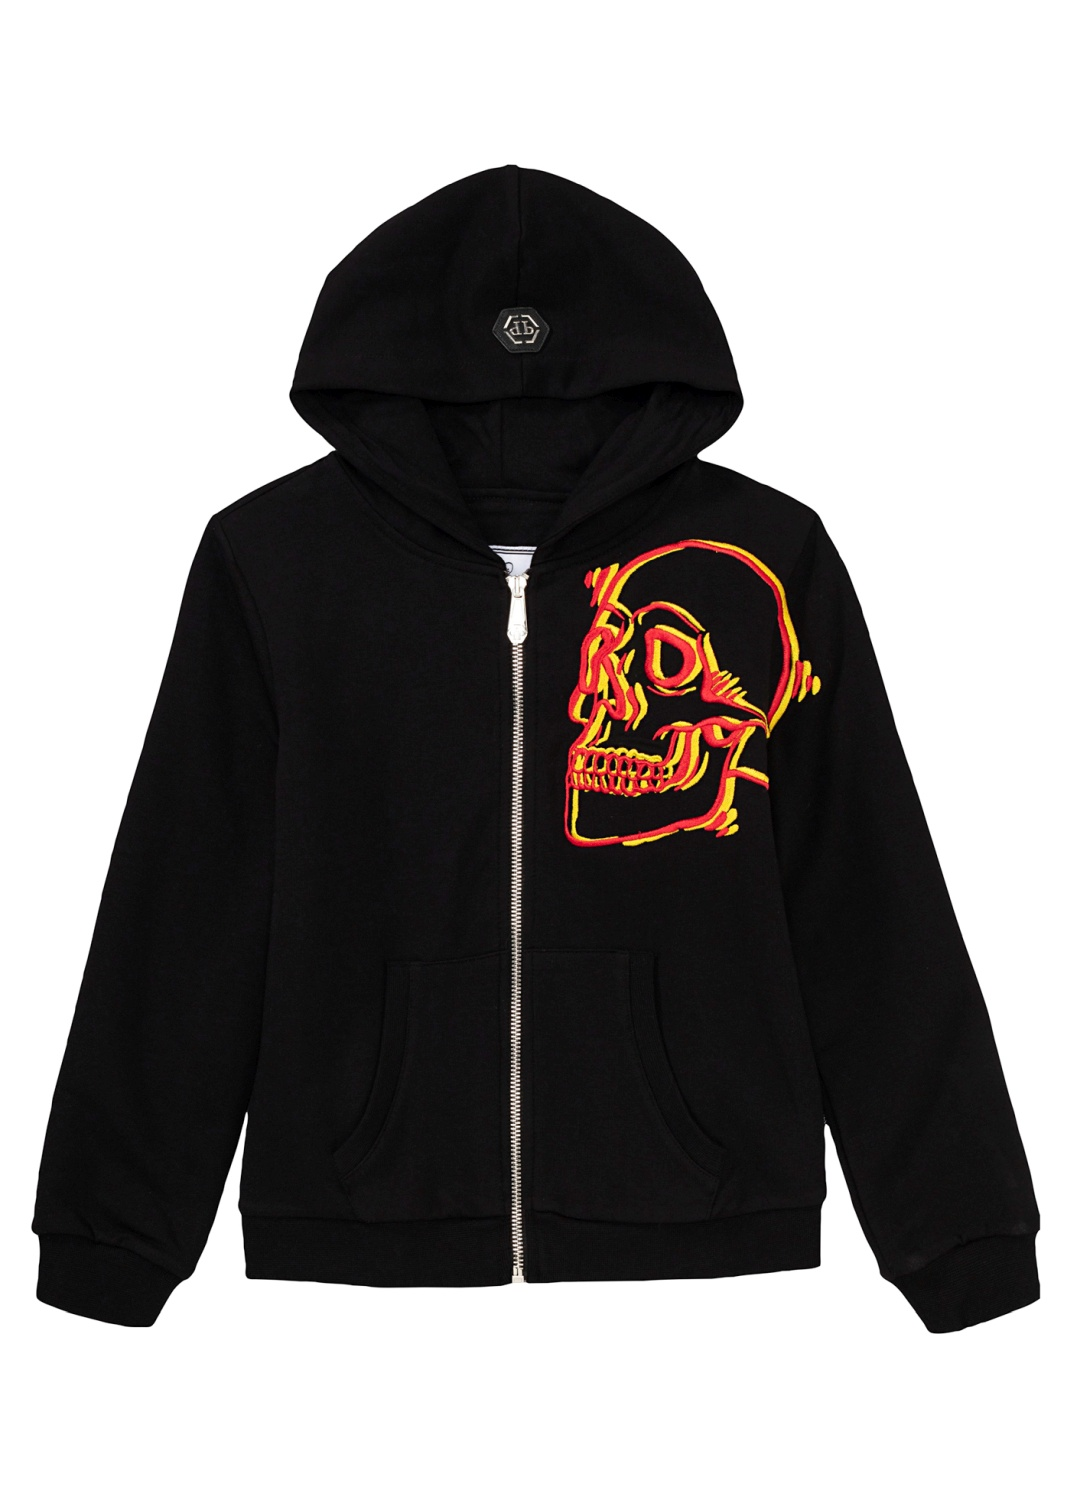 New Embroided Skull Zip jacket image number 0